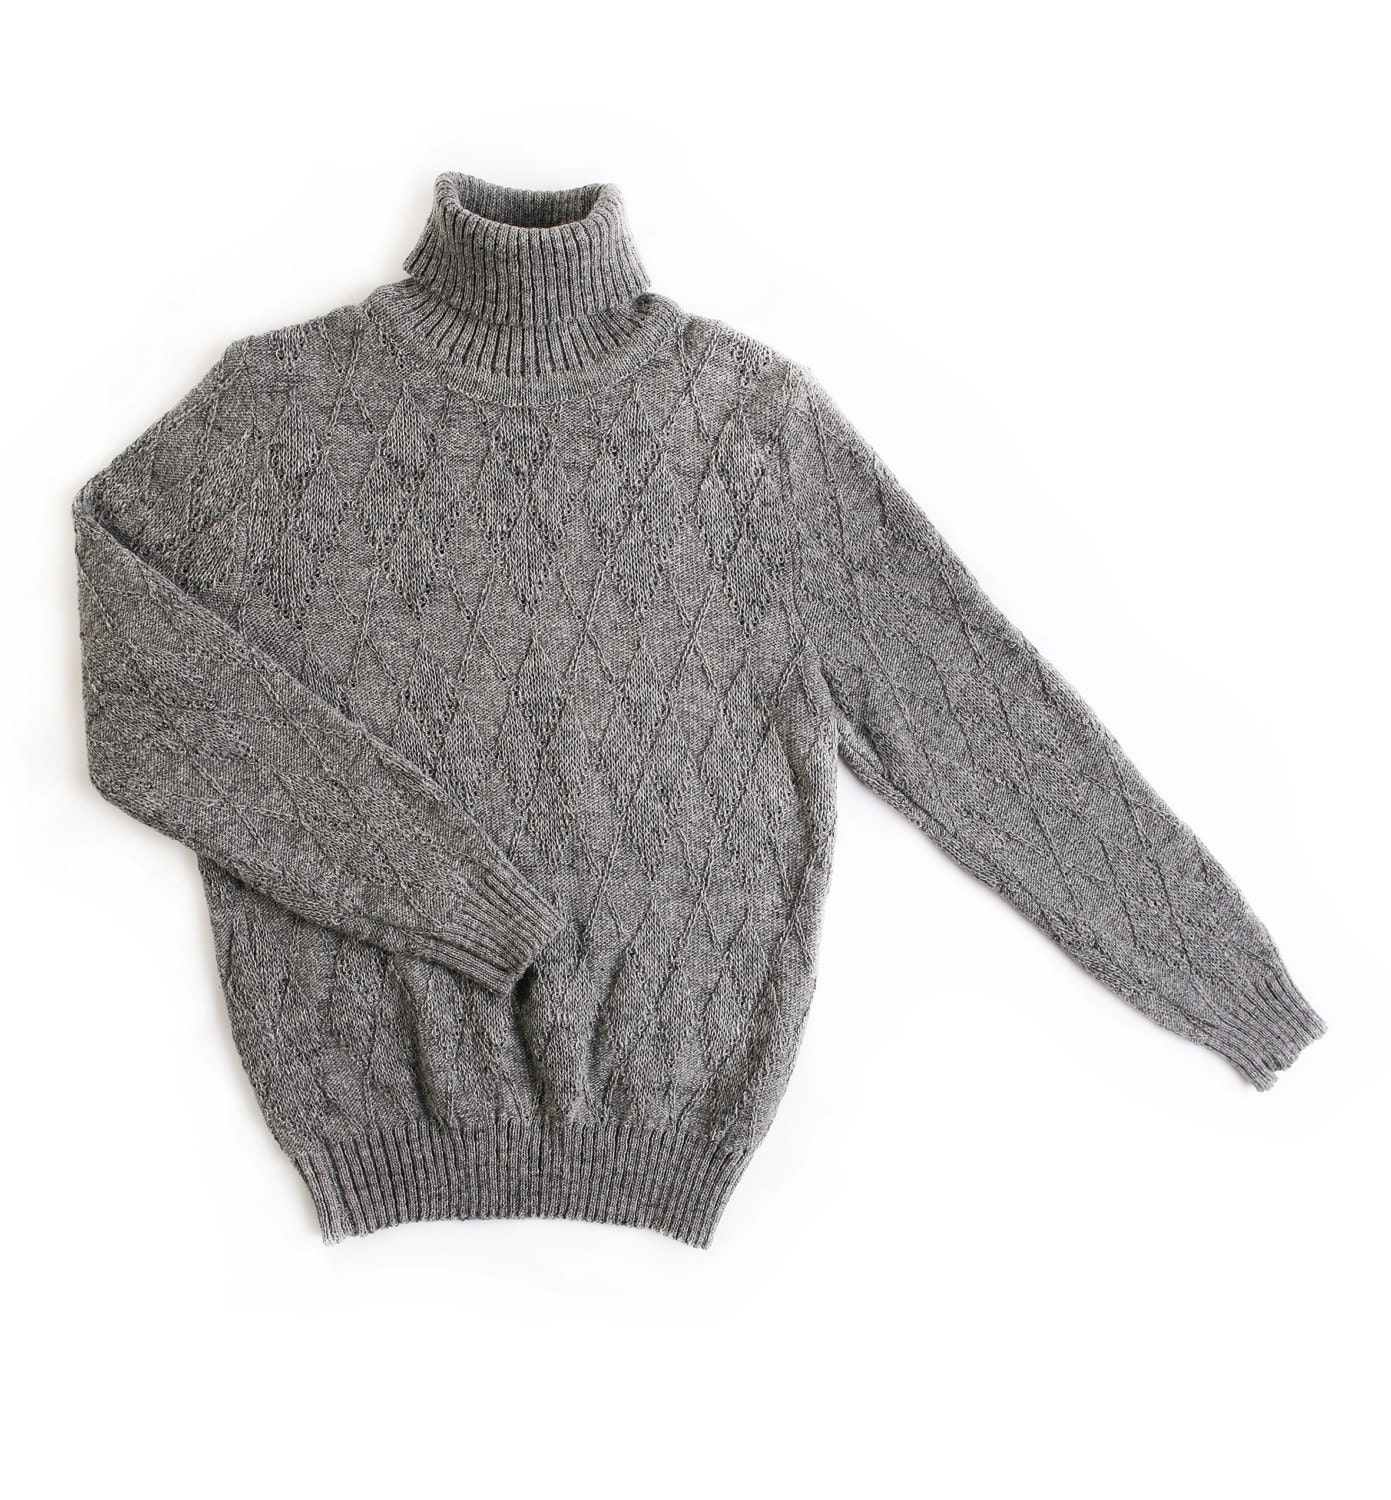 Men's knitted lambswool turtleneck sweater/high neck